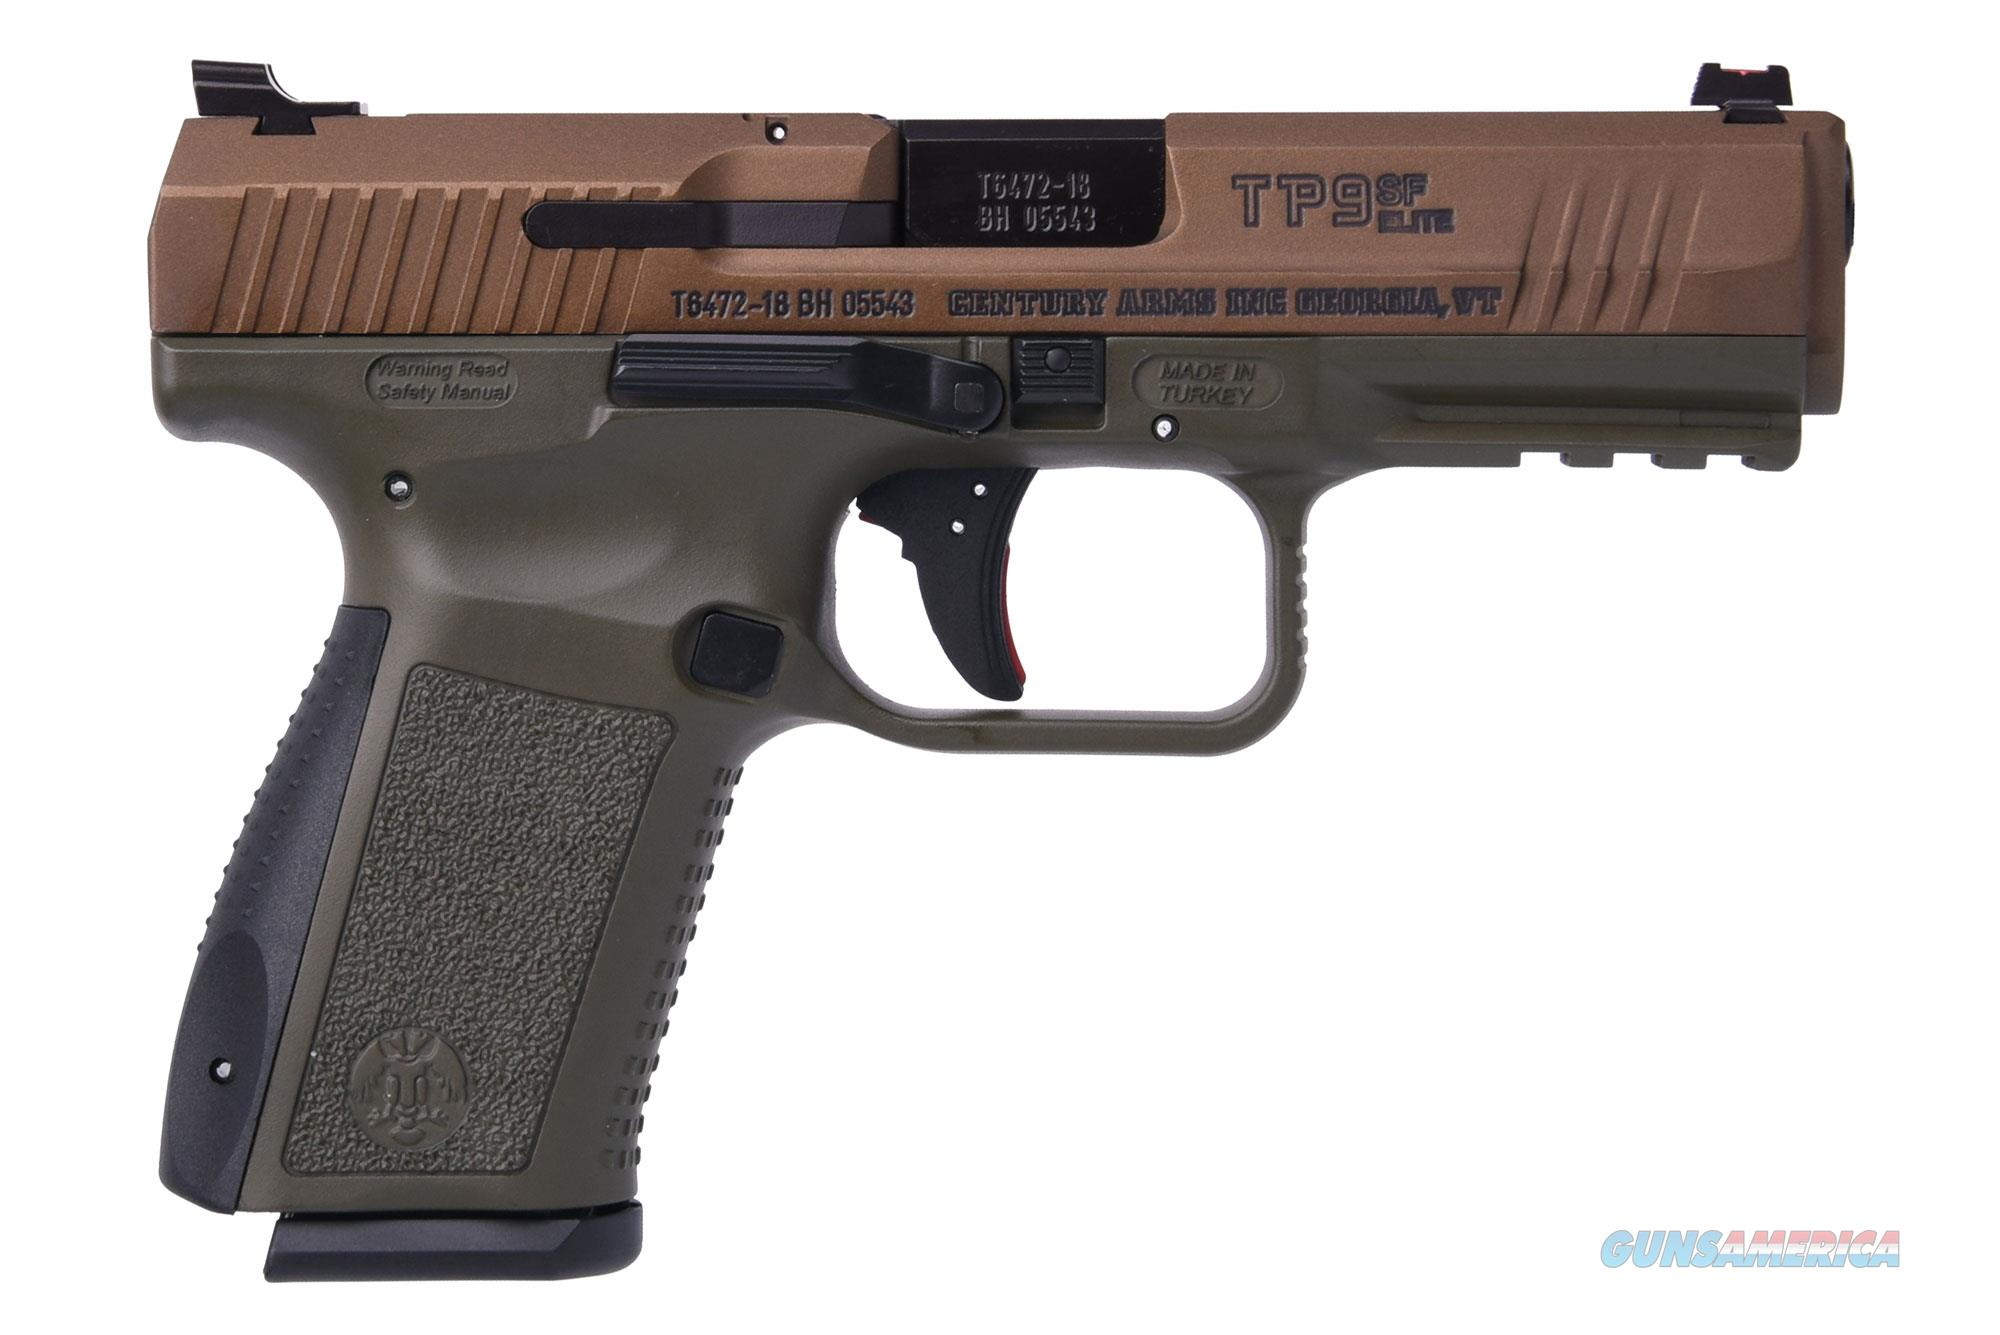 CANIK CANIK TP9SF ELITE 9MM BRNZ/OD 15+1 | BURNT BRONZE SLIDE  Guns > Pistols > C Misc Pistols